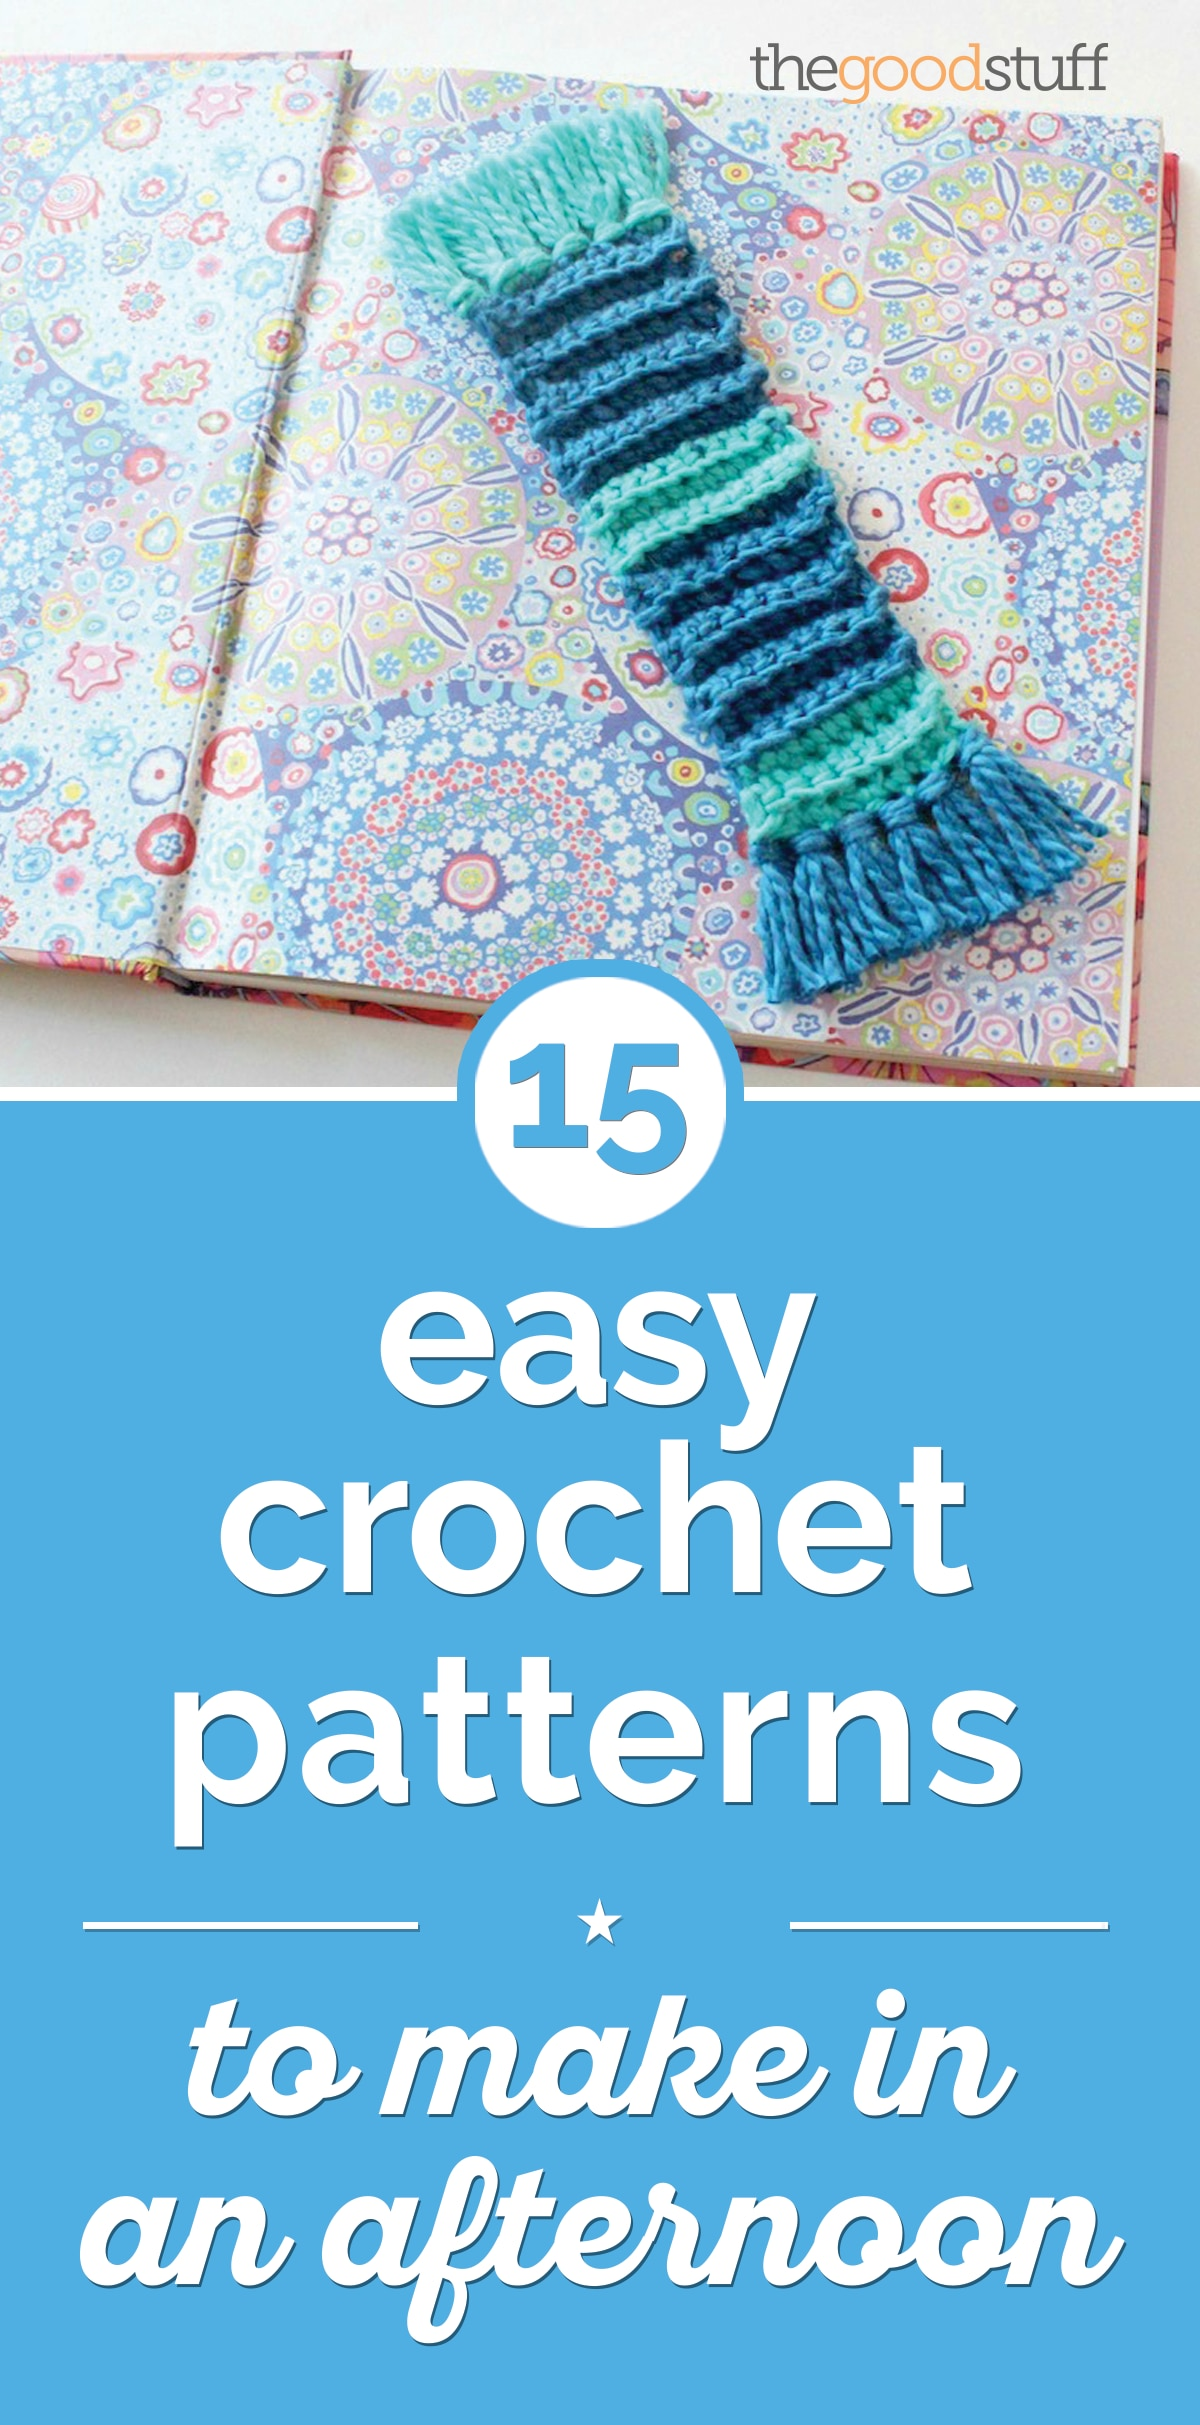 15 Easy Crochet Patterns to Make in an Afternoon | thegoodstuff